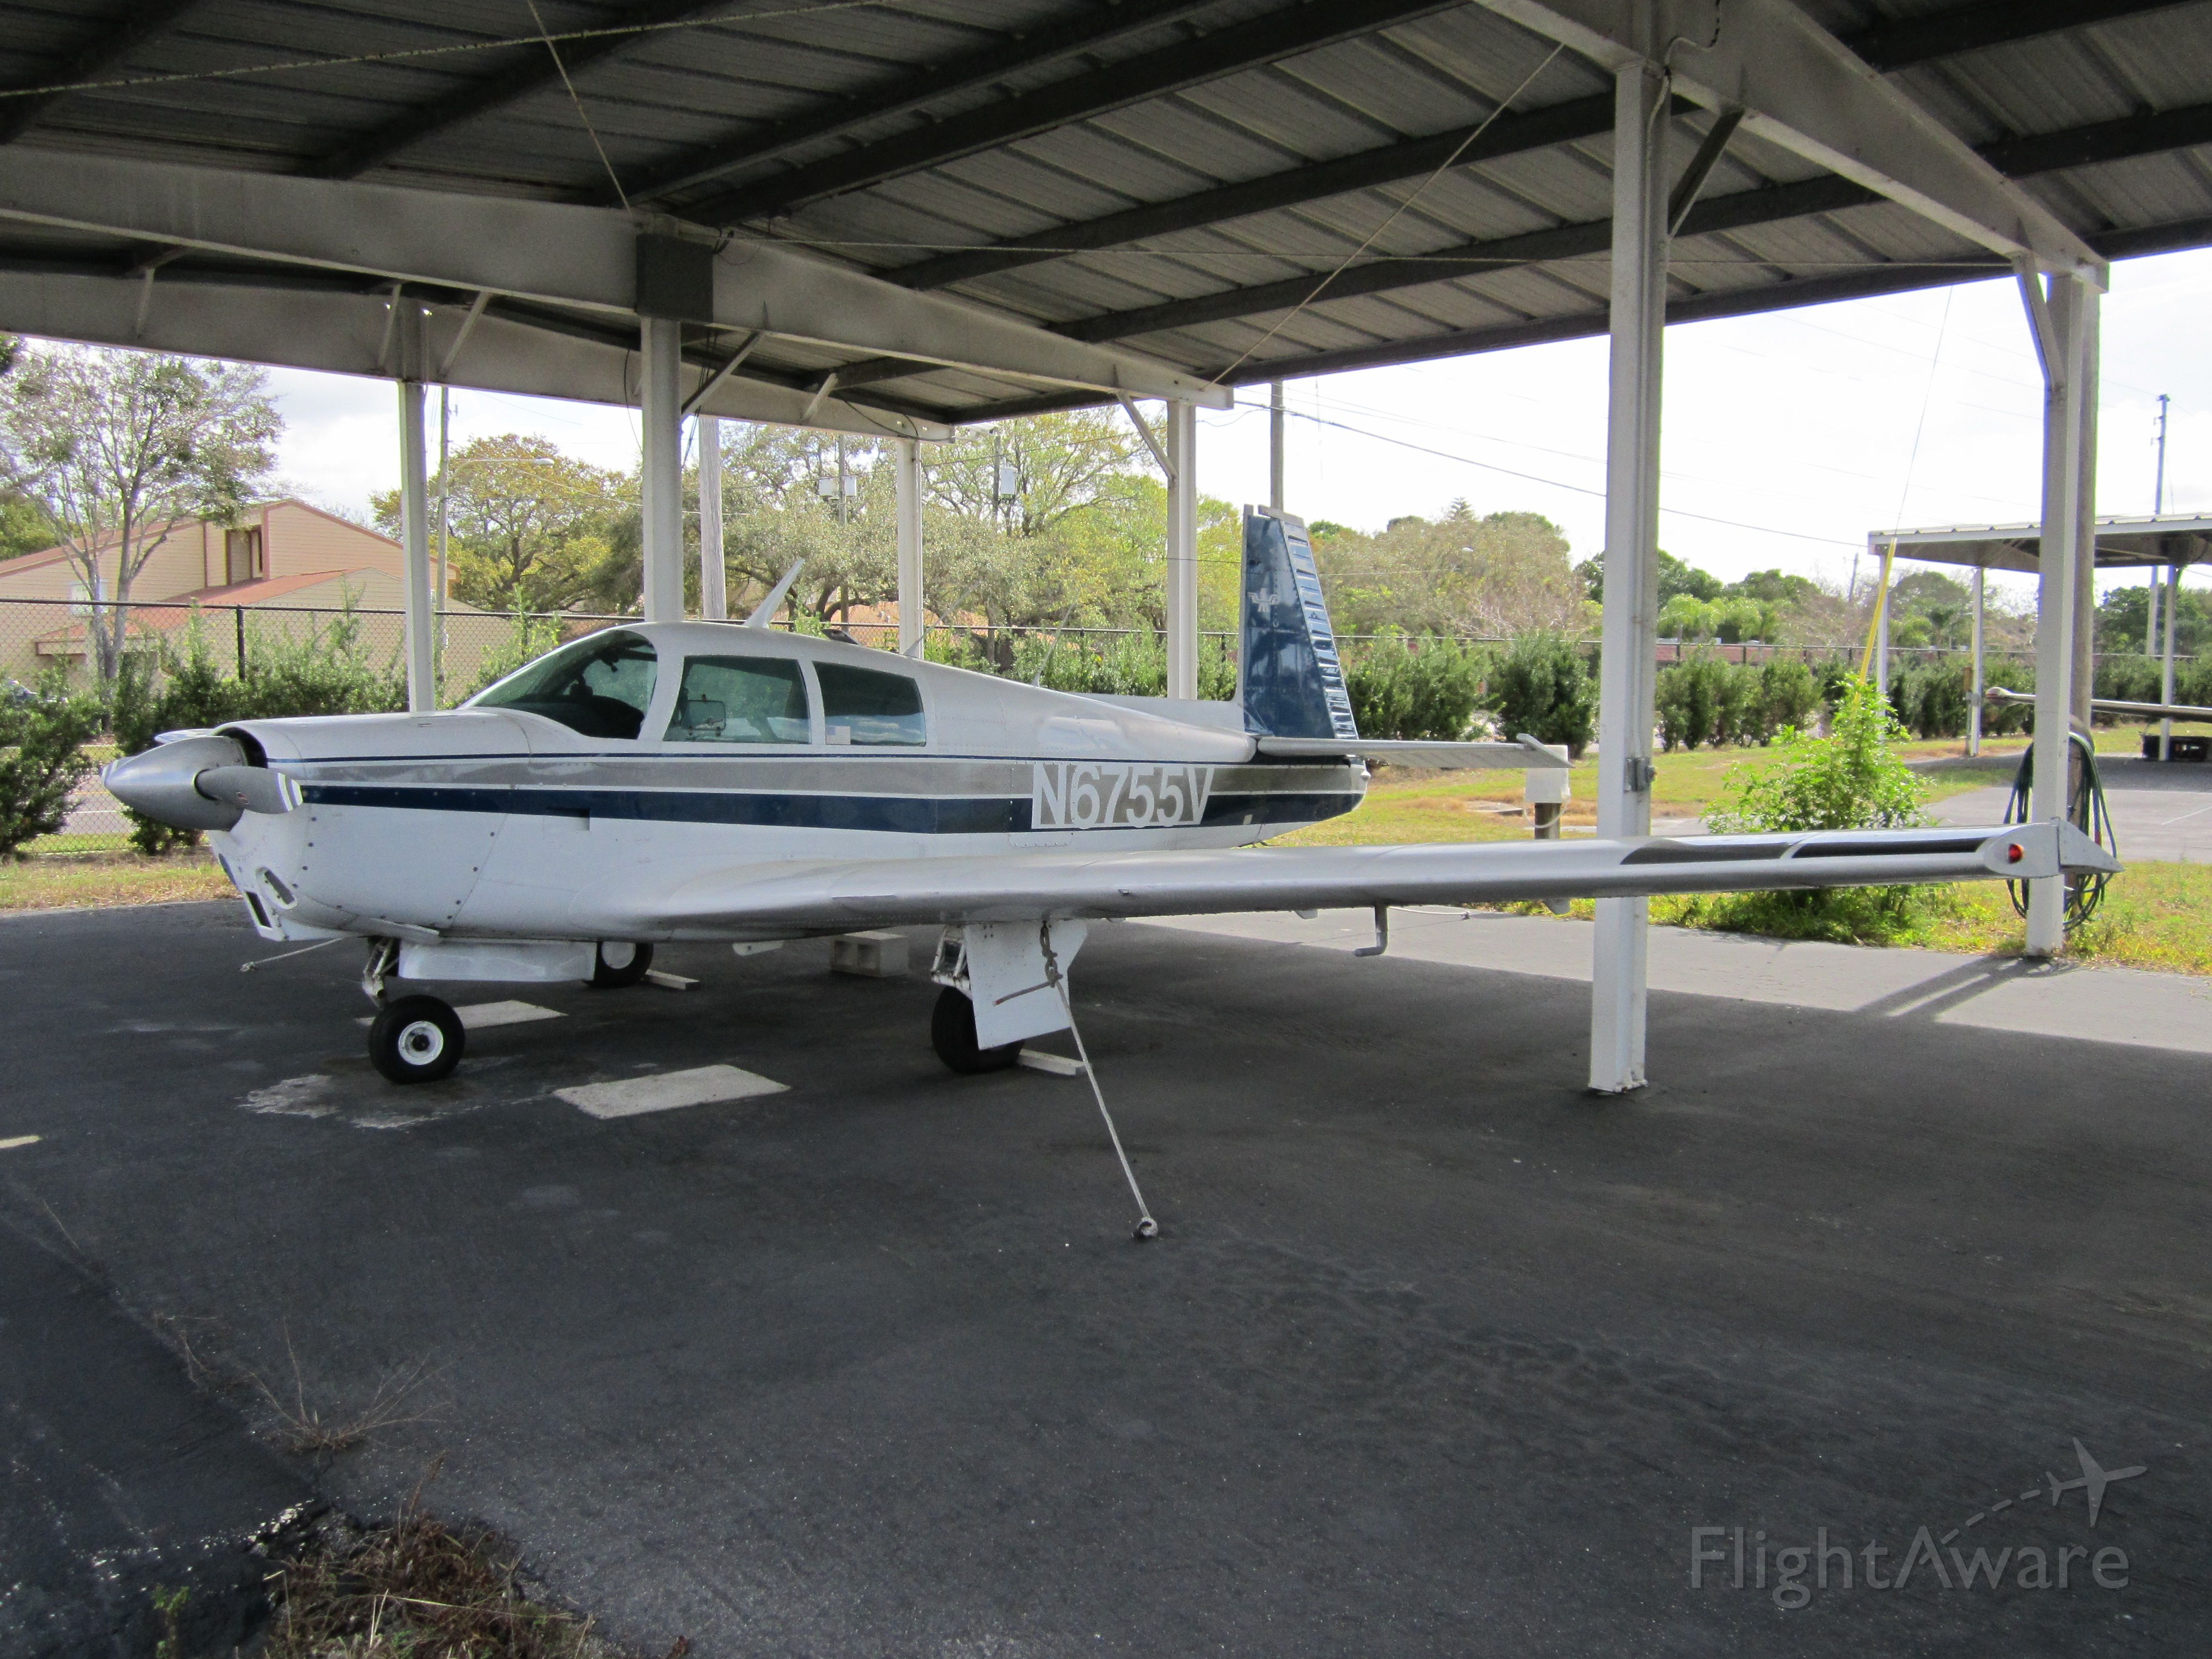 Mooney M-20 (N6755V) - CLEARWATER AIRPARK, CLEARWATER, FL, USA  02.22.2013